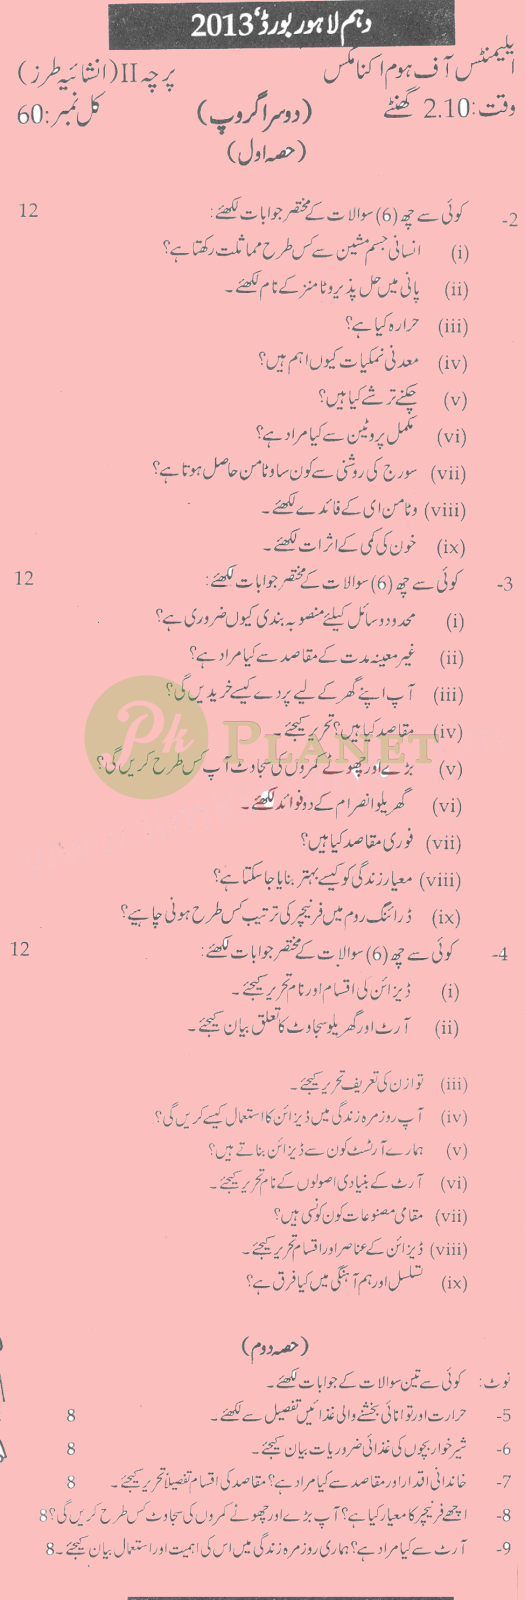 Past Papers of Class 10 Lahore Board Home Economics 2013